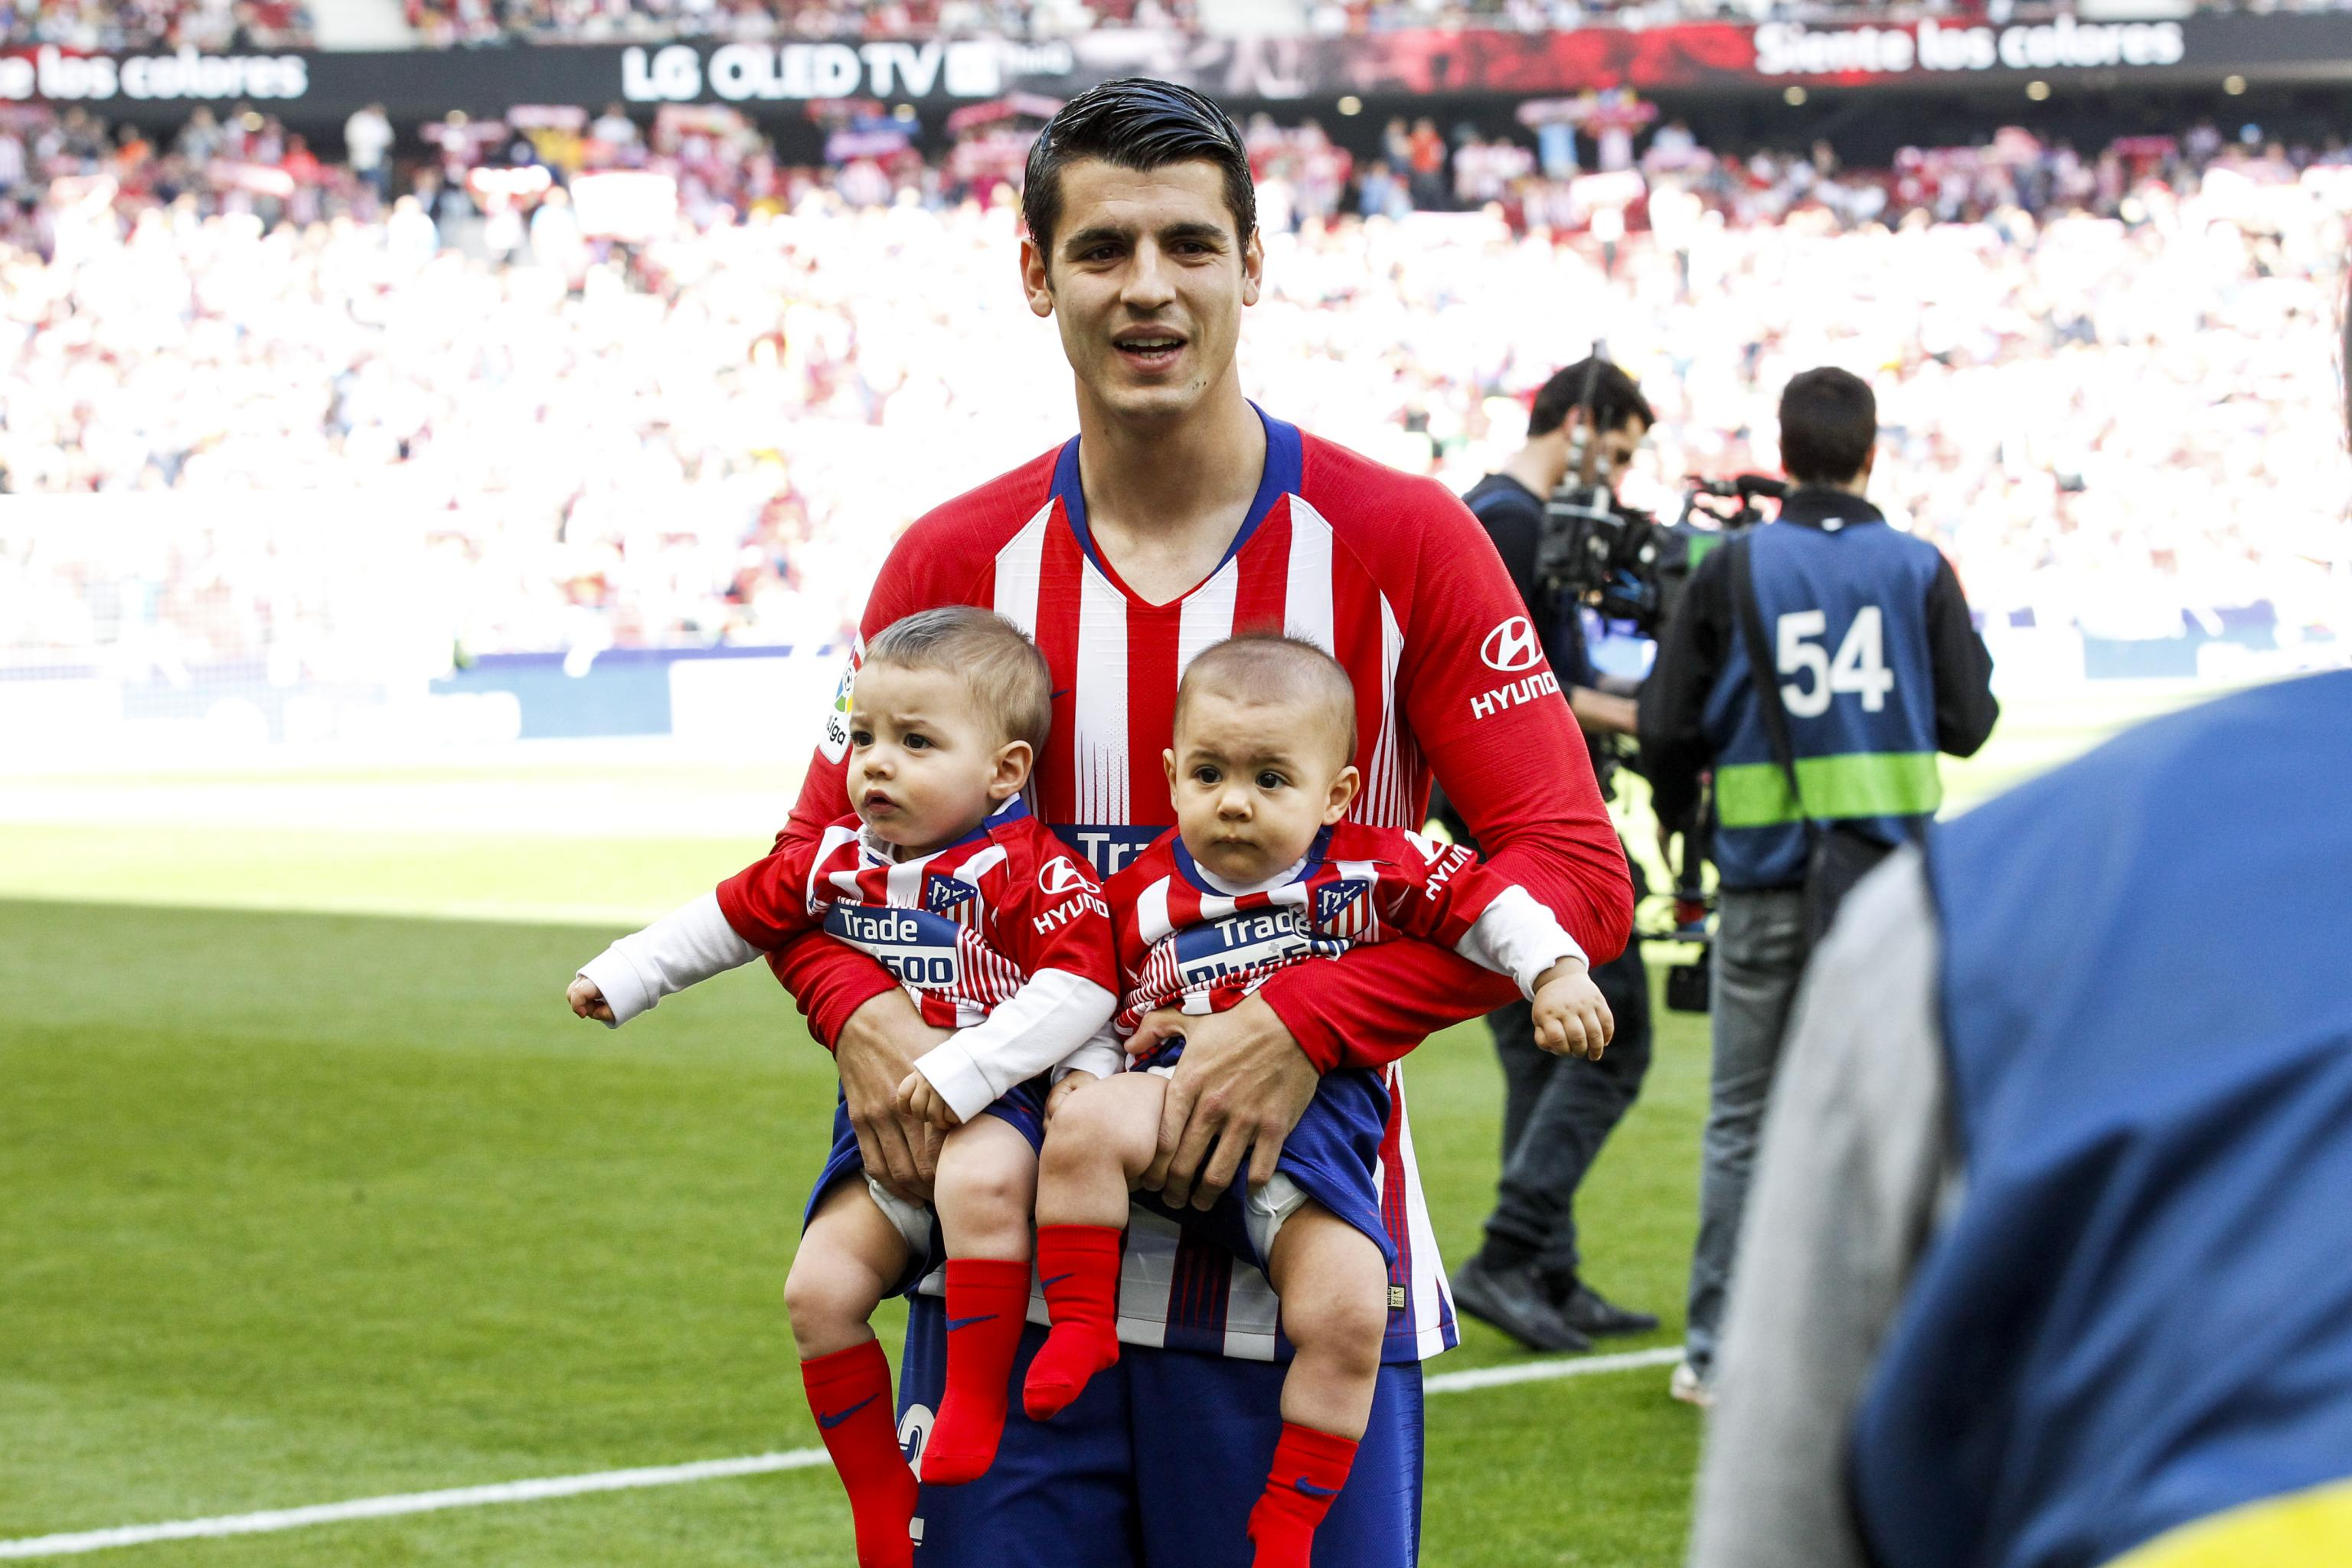 Alvaro Morata Agrees To 2020 Atletico Madrid Transfer After Loan From Chelsea Bleacher Report Latest News Videos And Highlights